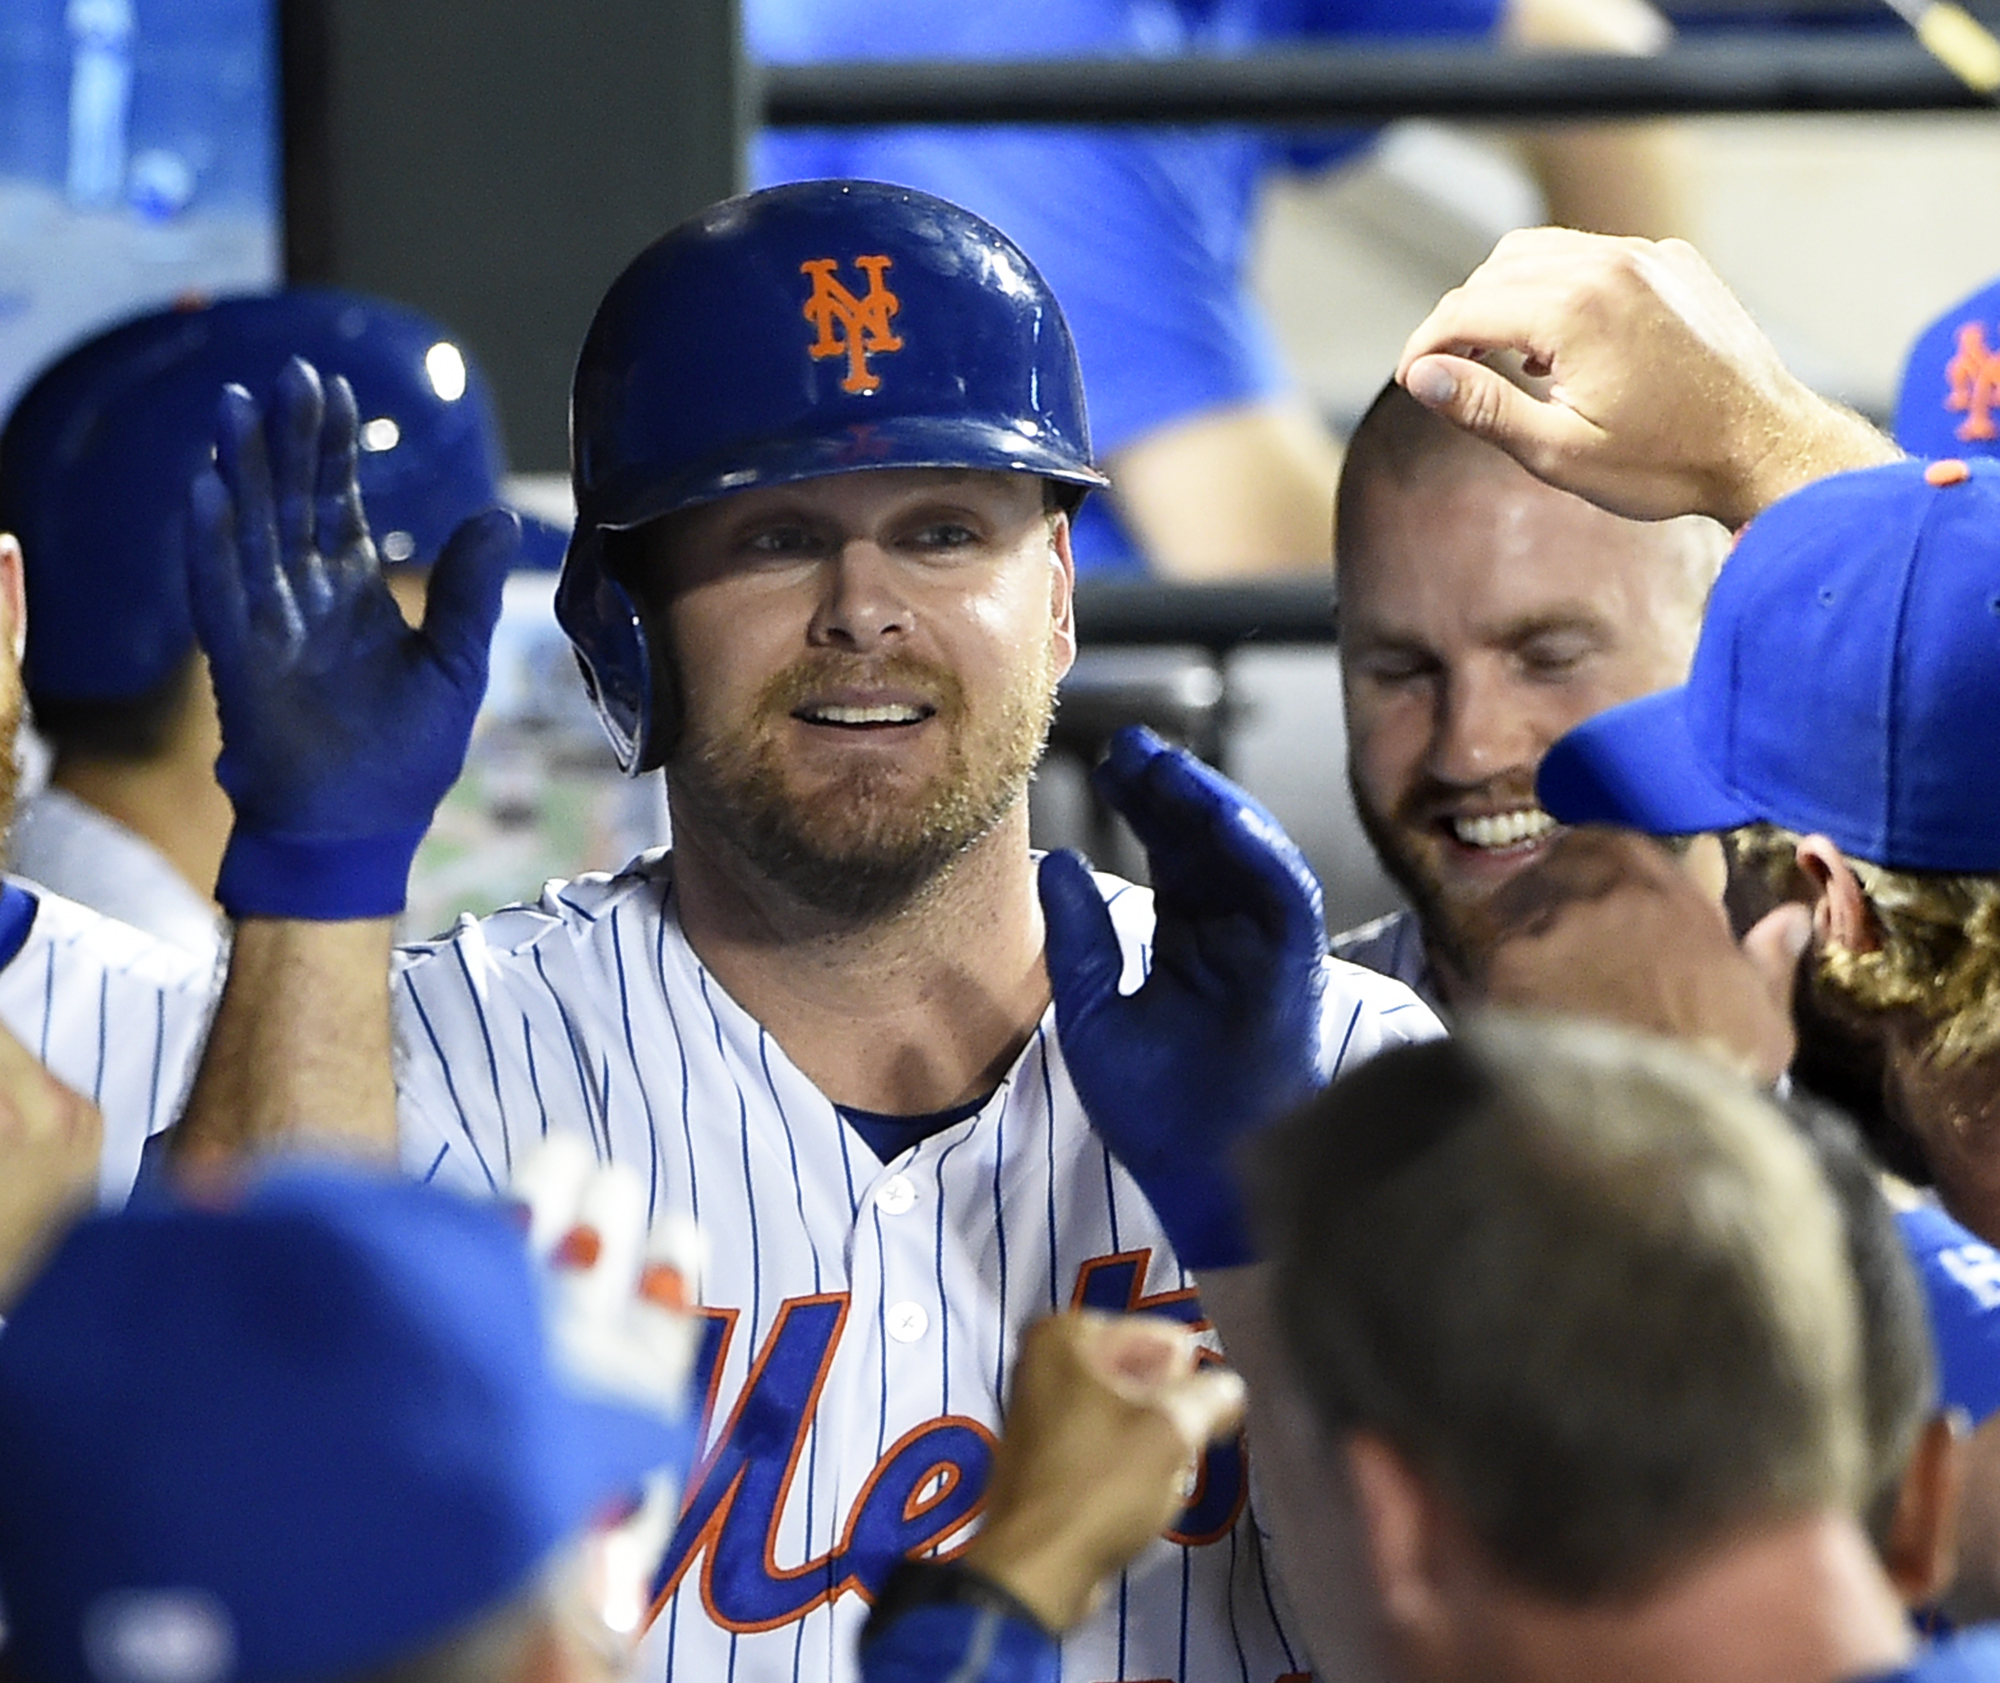 New York Mets' Lucas Duda is congratulated by teammates in the dugout after hitting his second home run of a baseball game against the Washington Nationals in the seventh inning at Citi Field on Saturday, Aug. 1, 2015, in New York. (AP Photo/Kathy Kmonice